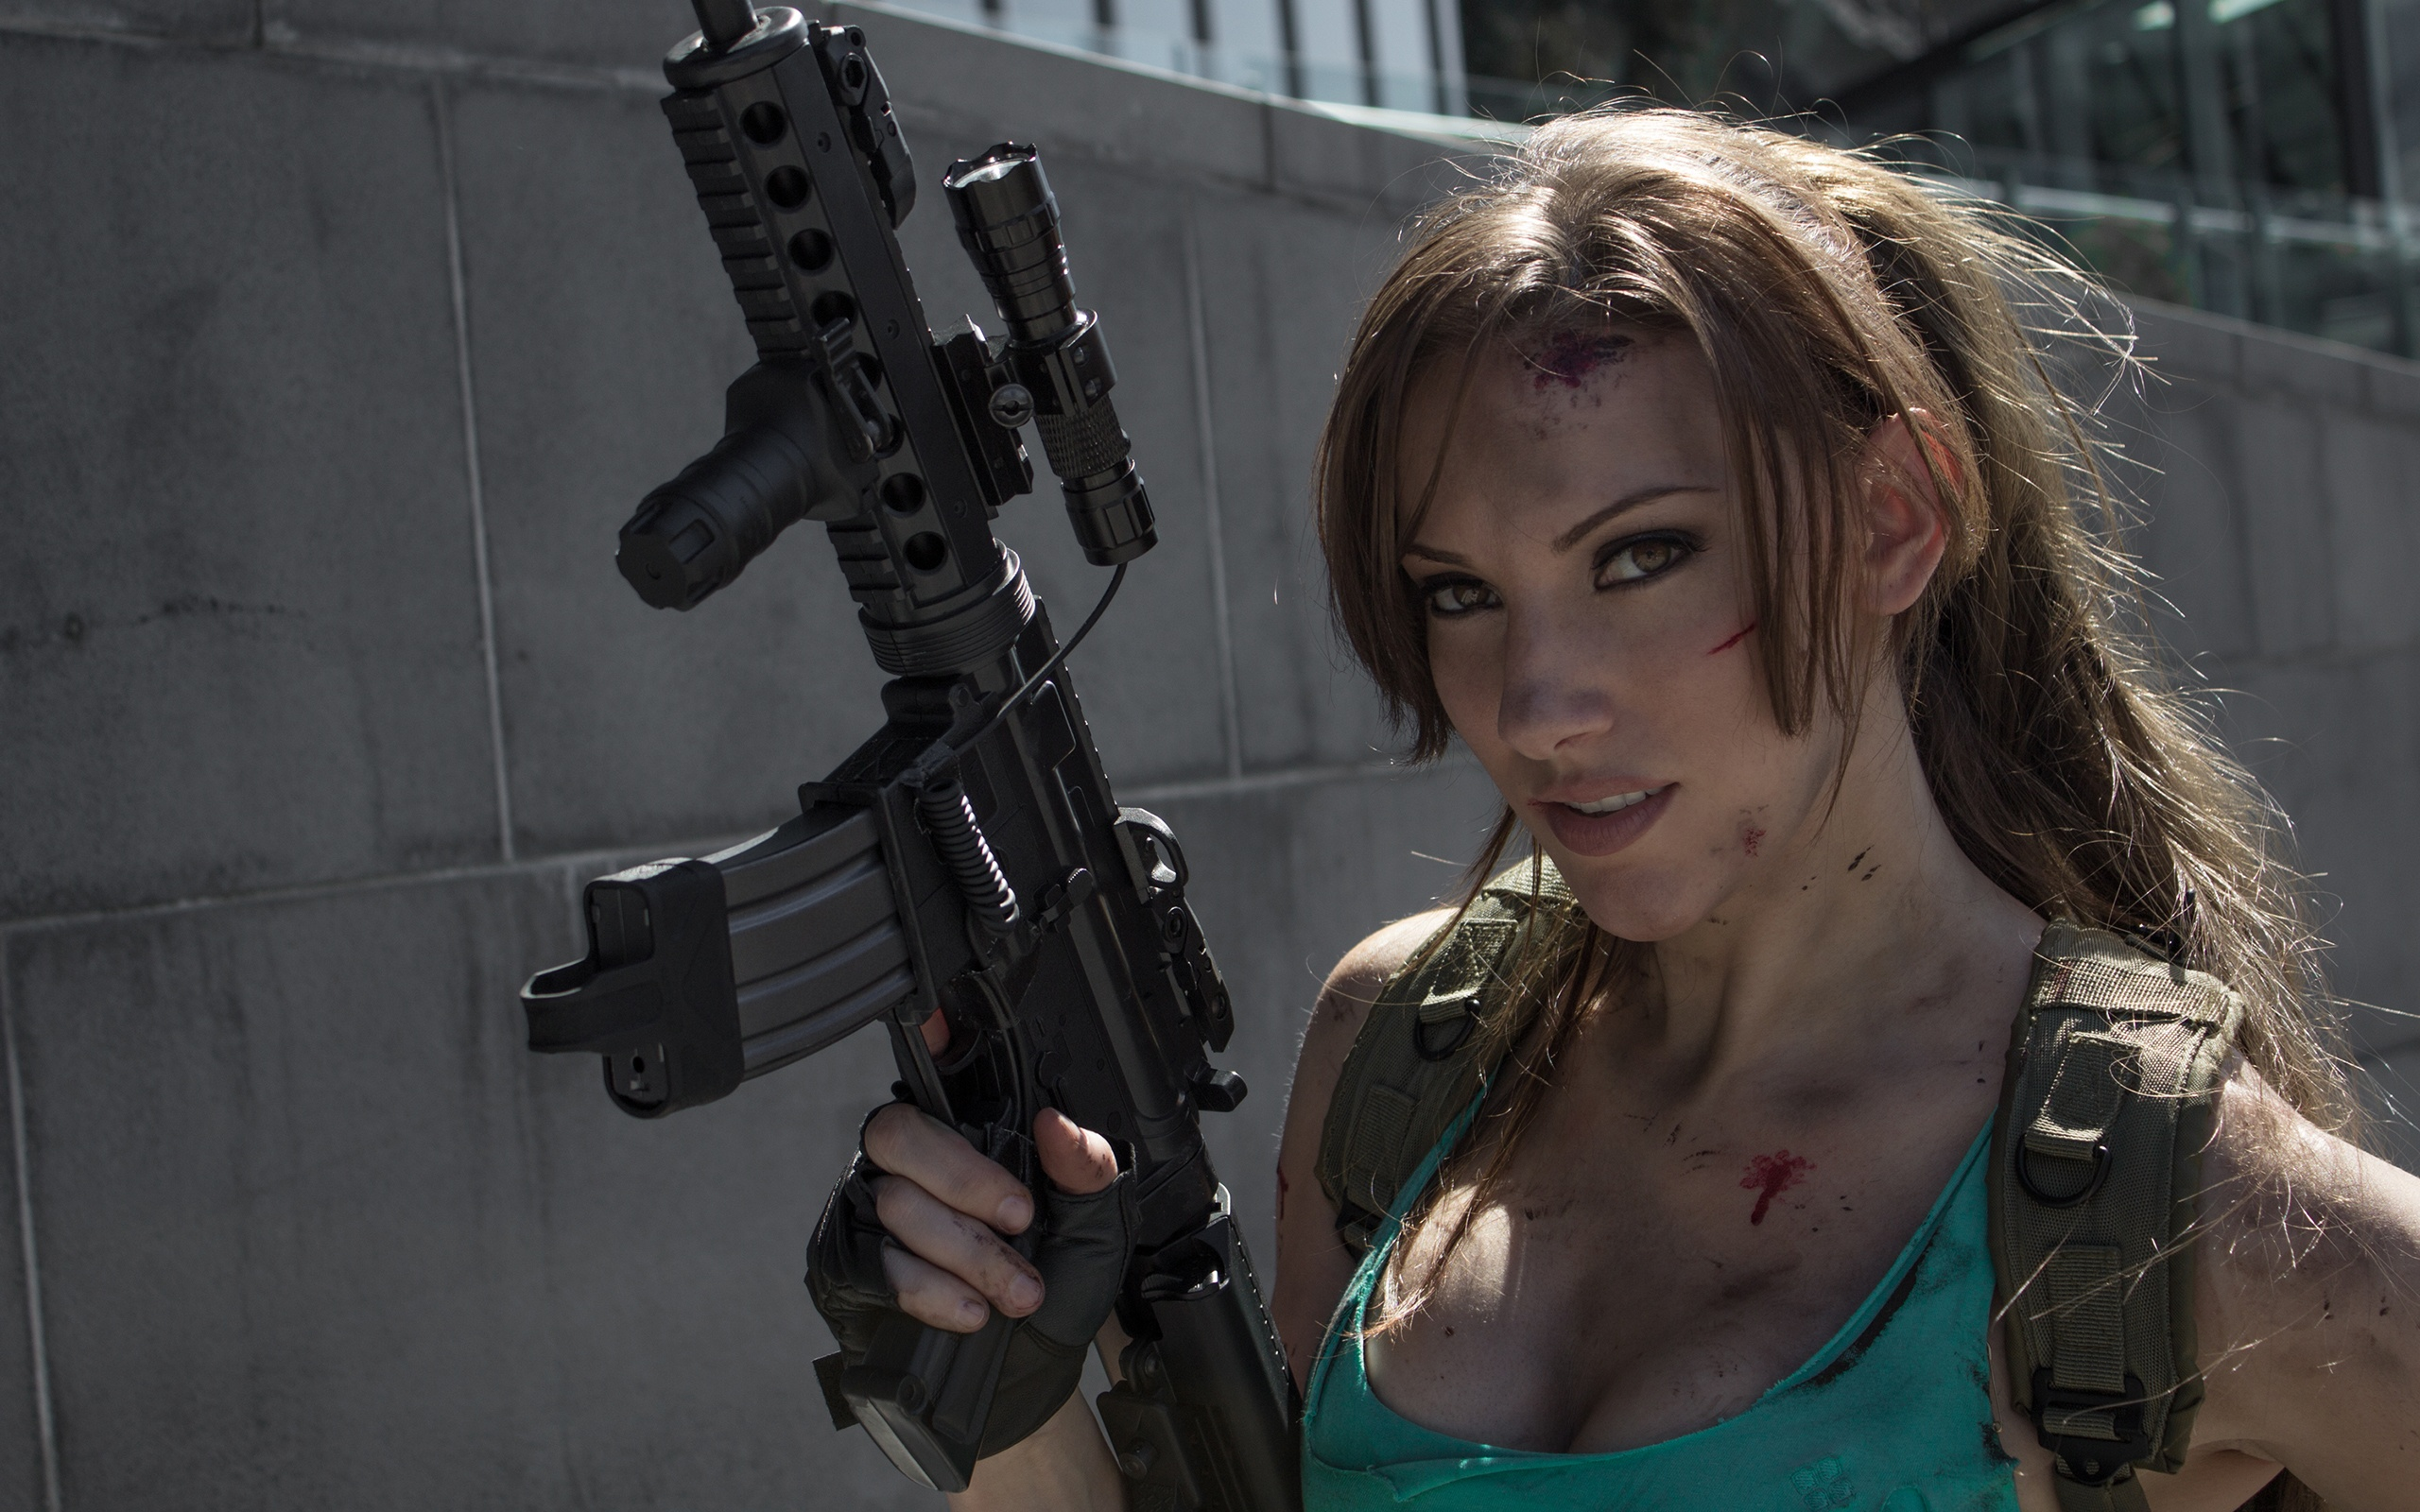 Jenncroft Lara Croft